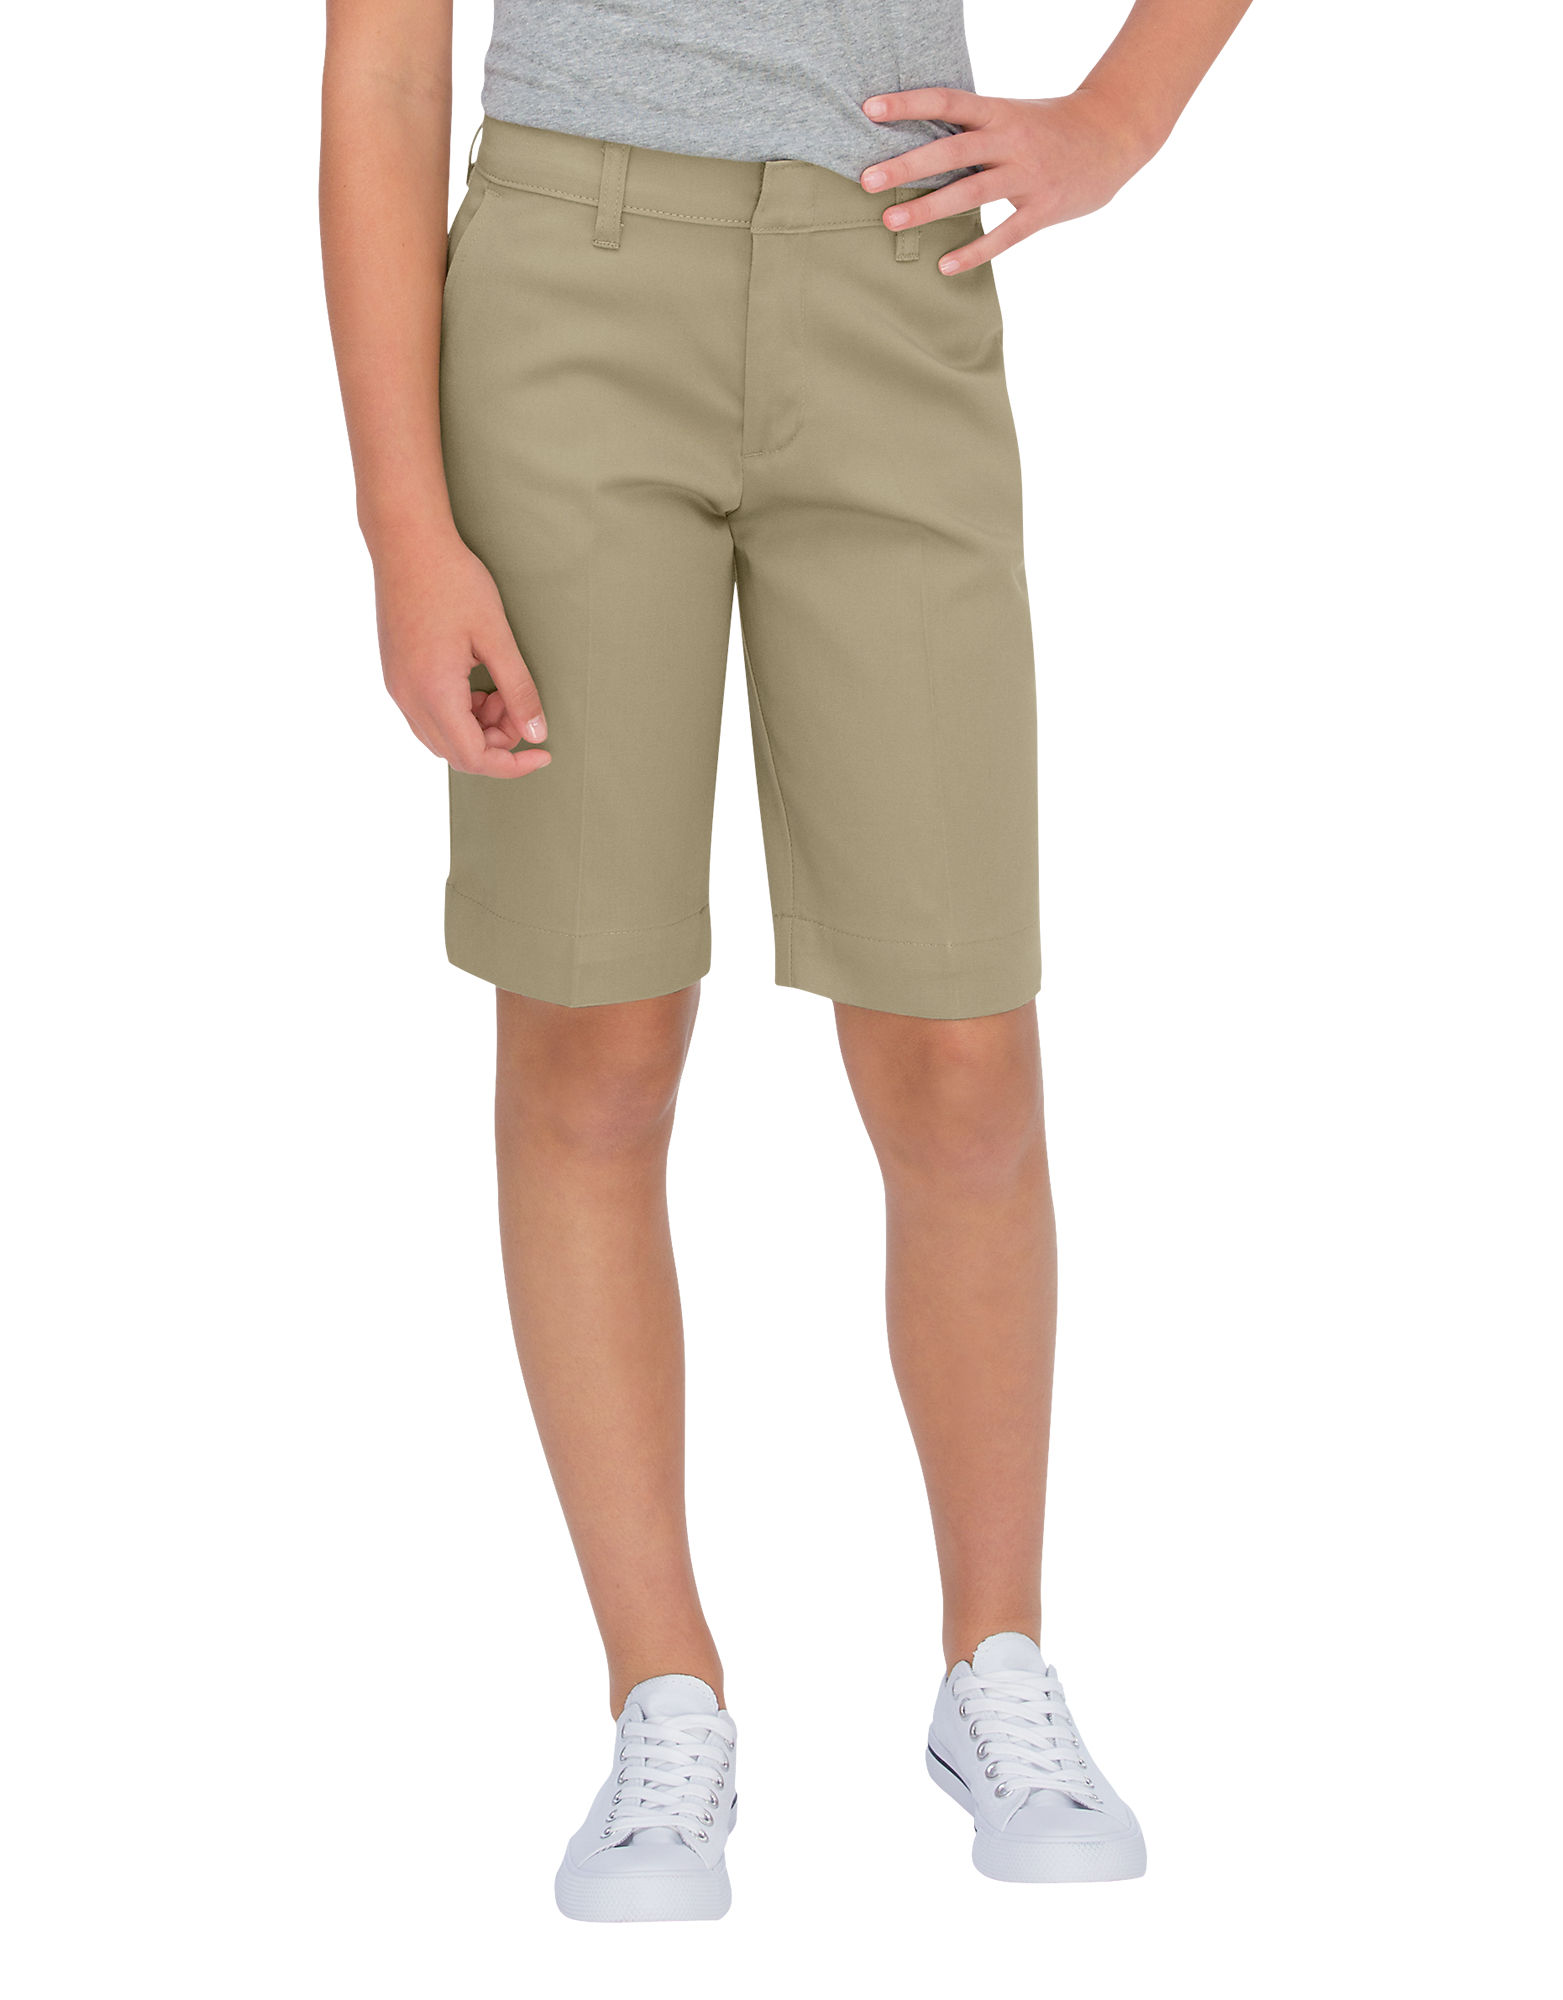 Girls' Classic Fit Bermuda Stretch Twill Shorts (Plus), 10.5 - 20.5 - Desert Khaki (DS)